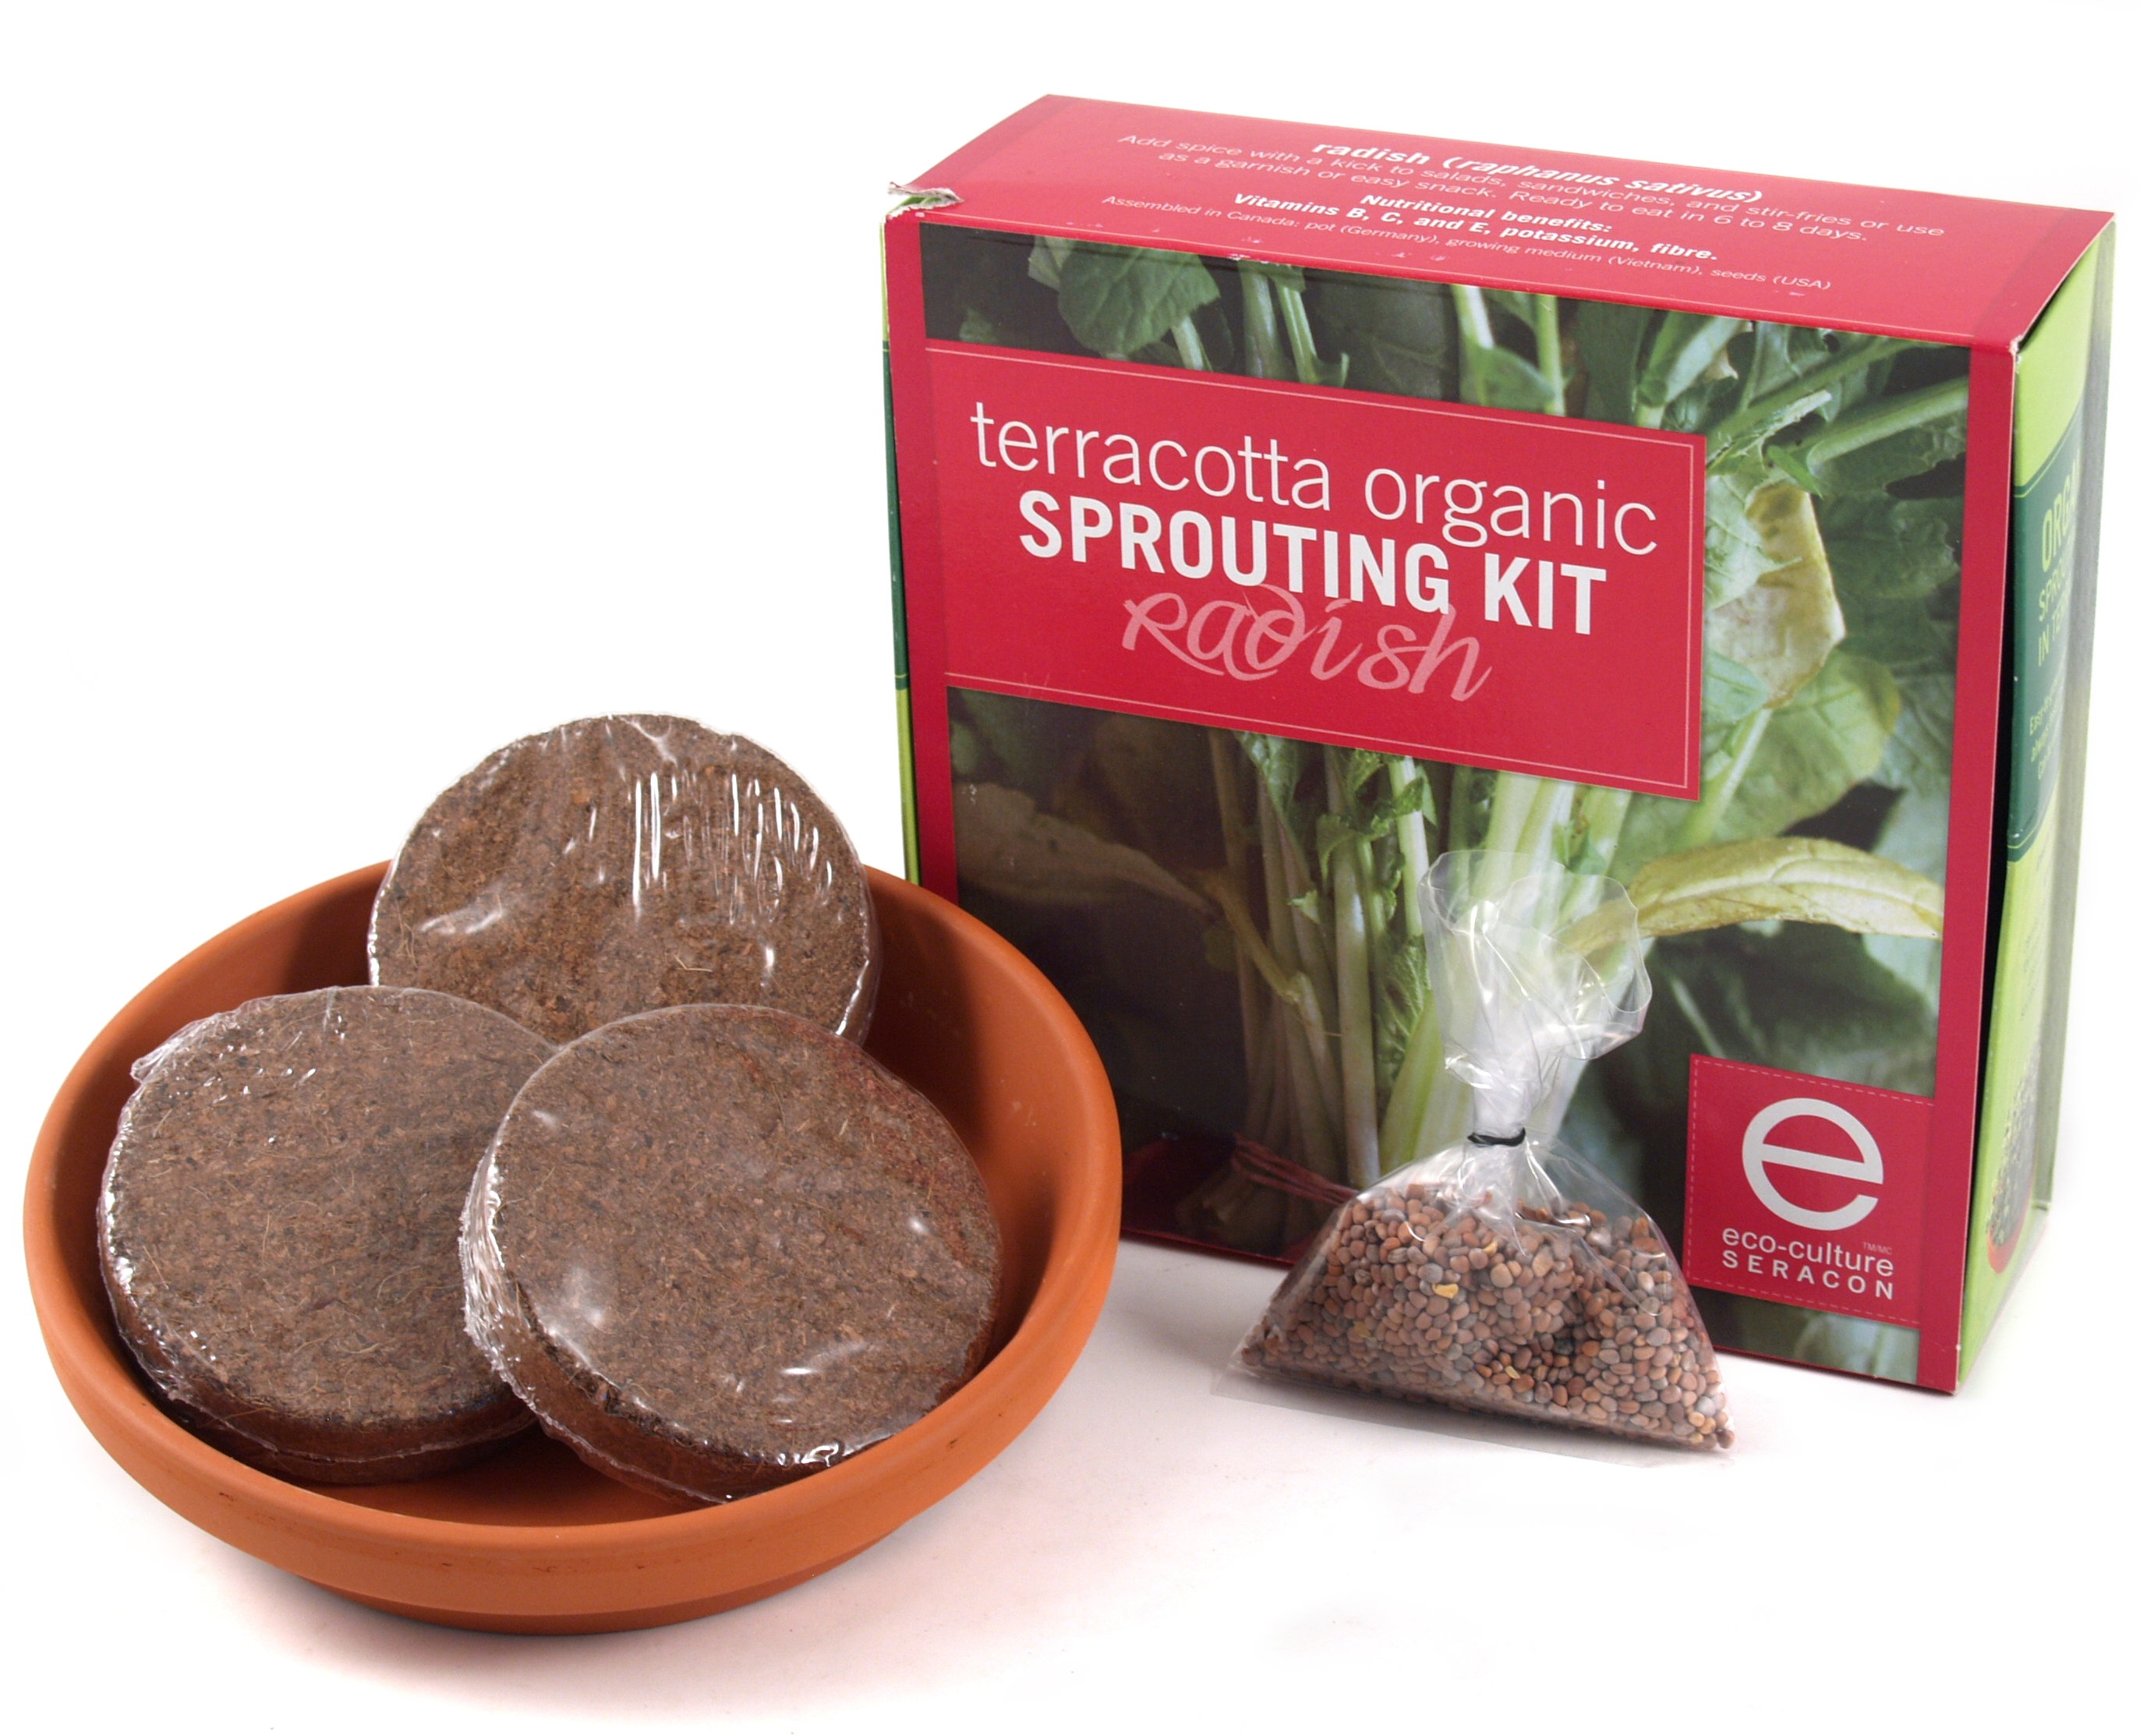 Eco-Culture Terracotta Organic Radish Sprouting Kit